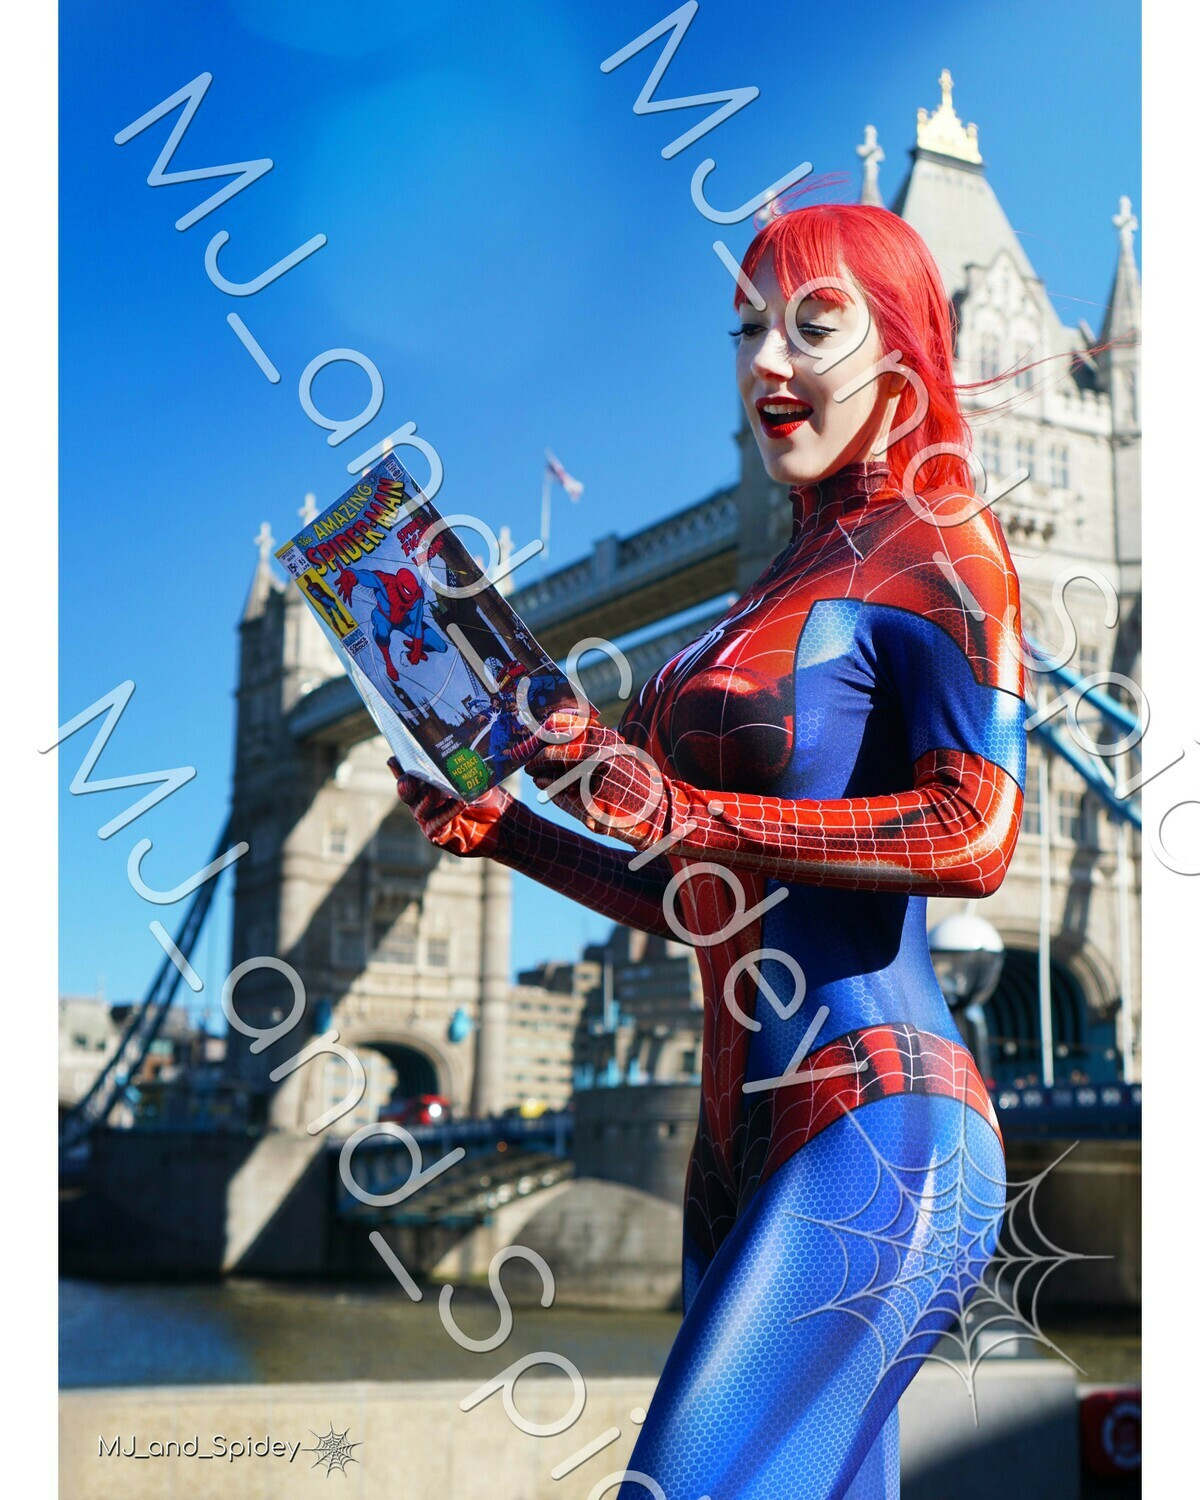 Marvel - Spider-Man - Mary Jane Watson - Classic Spider-Suit - UK No. 1 - Digital Cosplay Image (@MJ_and_Spidey, MJ and Spidey, Comics)